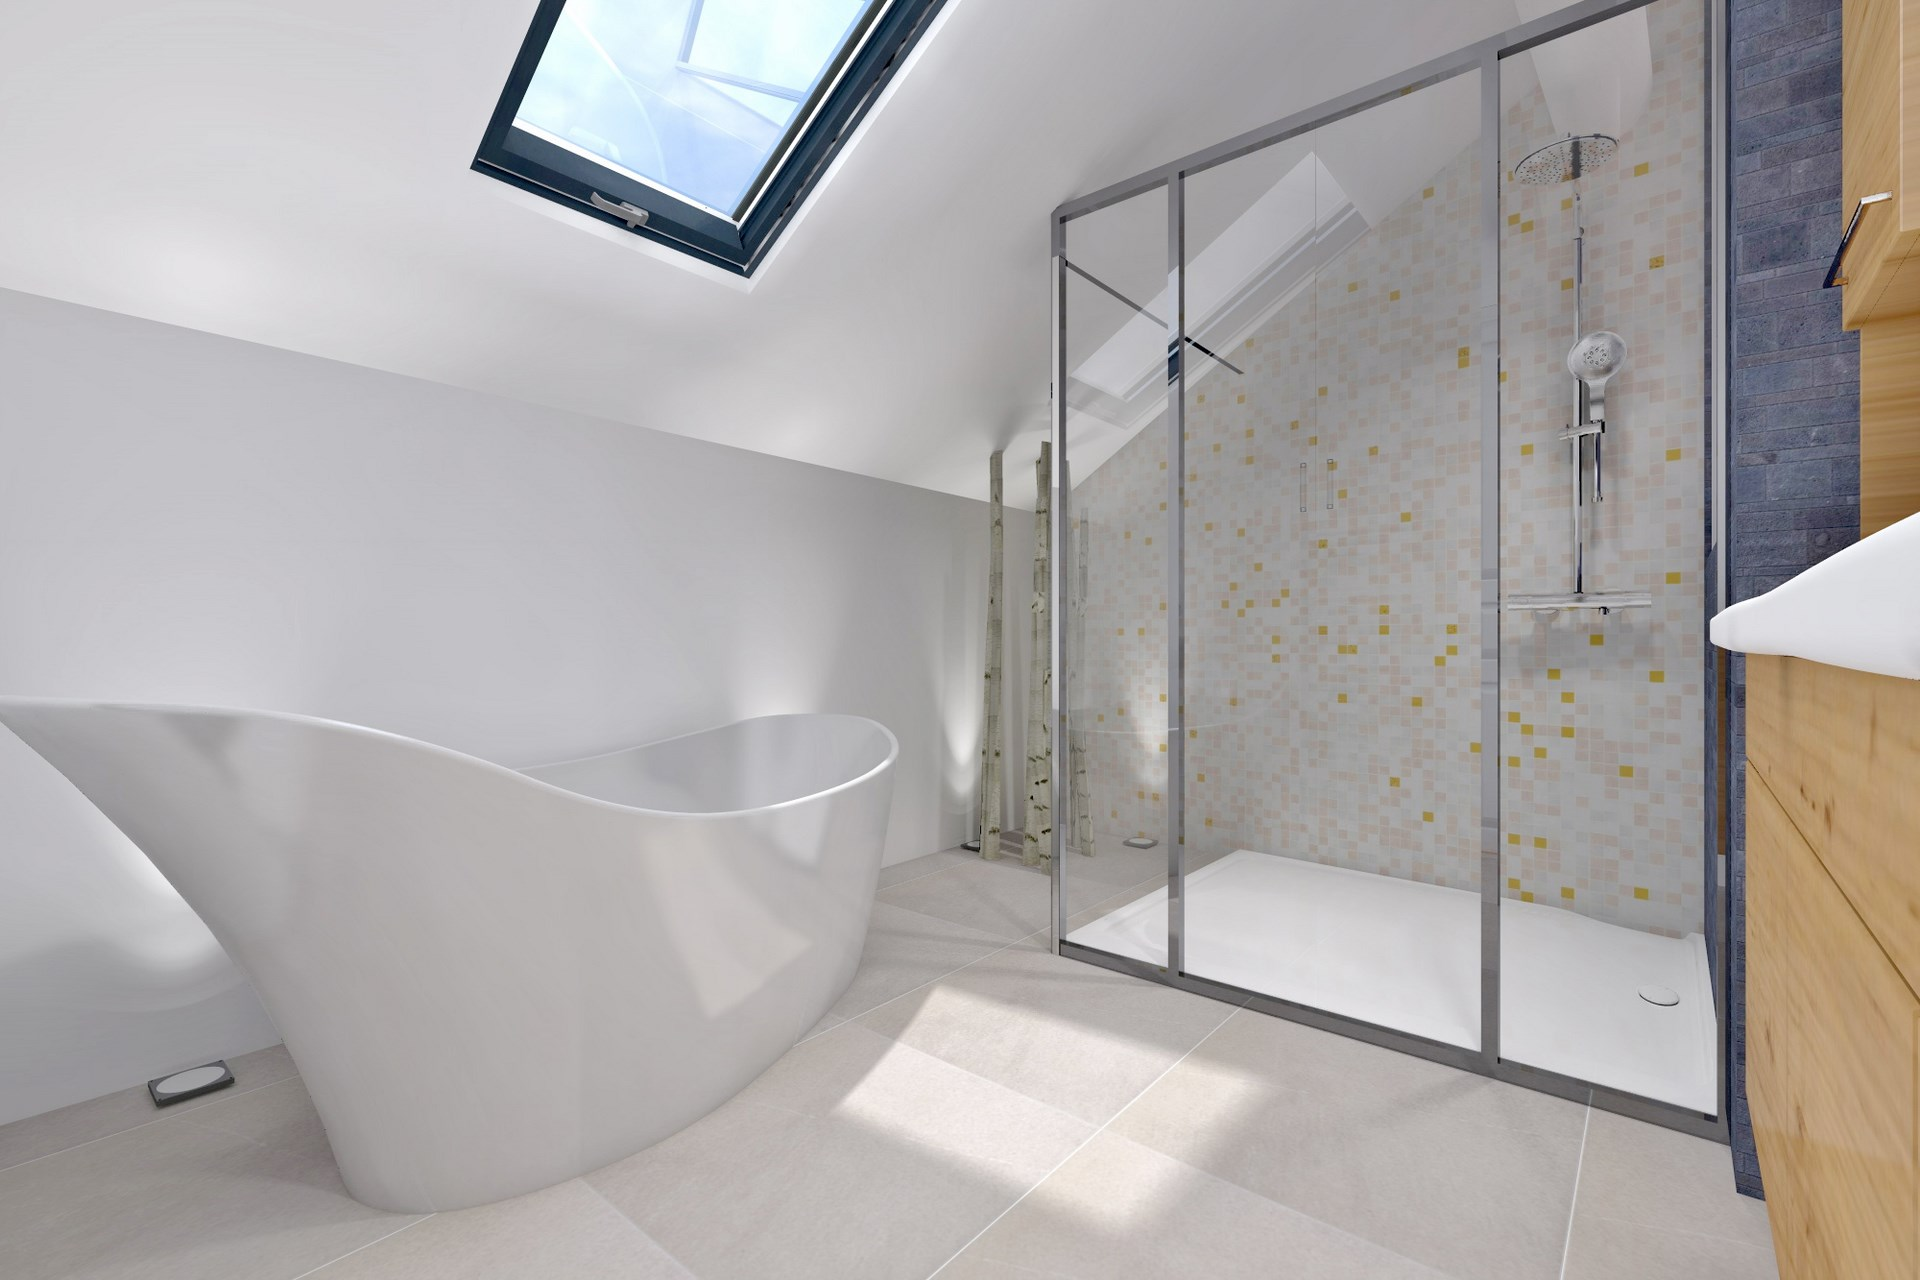 R organisation contemporaine maison tage parental et piscine for Salle de bain 2014